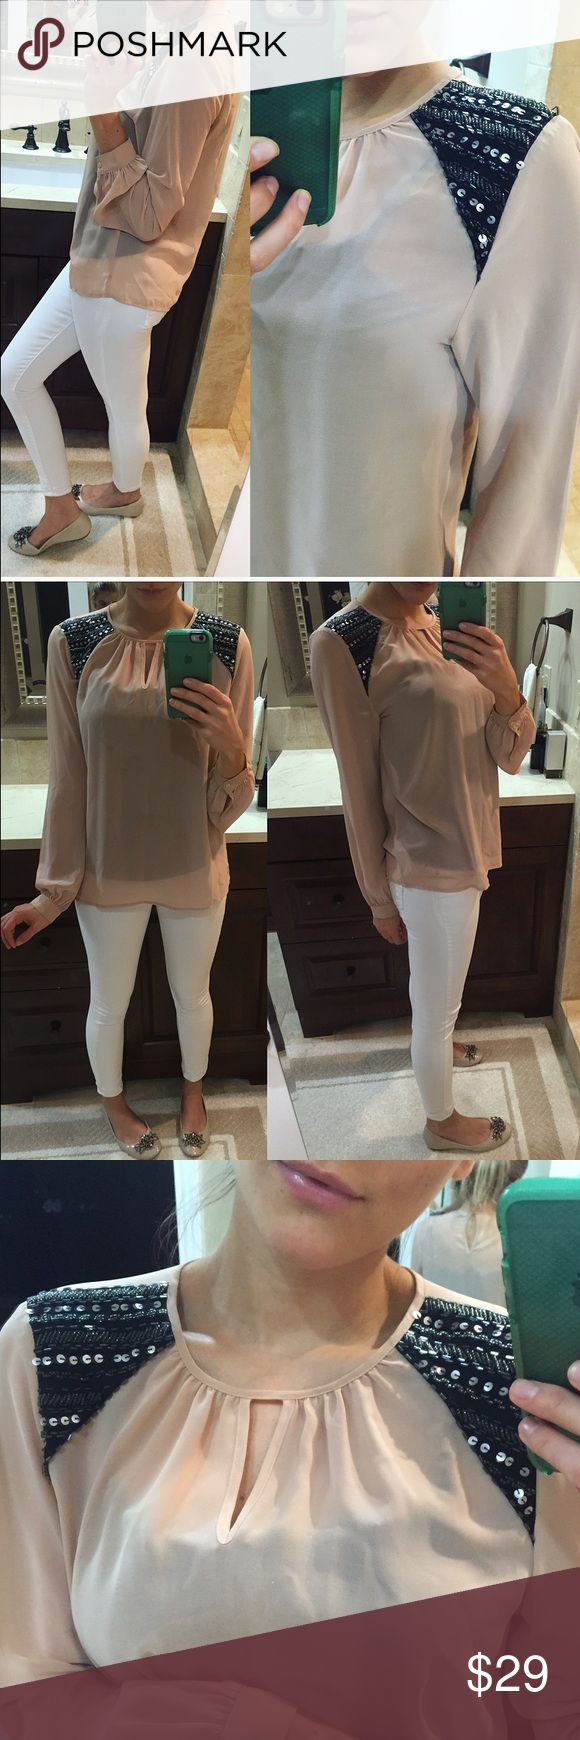 Nude Cami Beautiful and classy, perfect for a polished look. Love the embelished shoulder detail. Nwot Tops